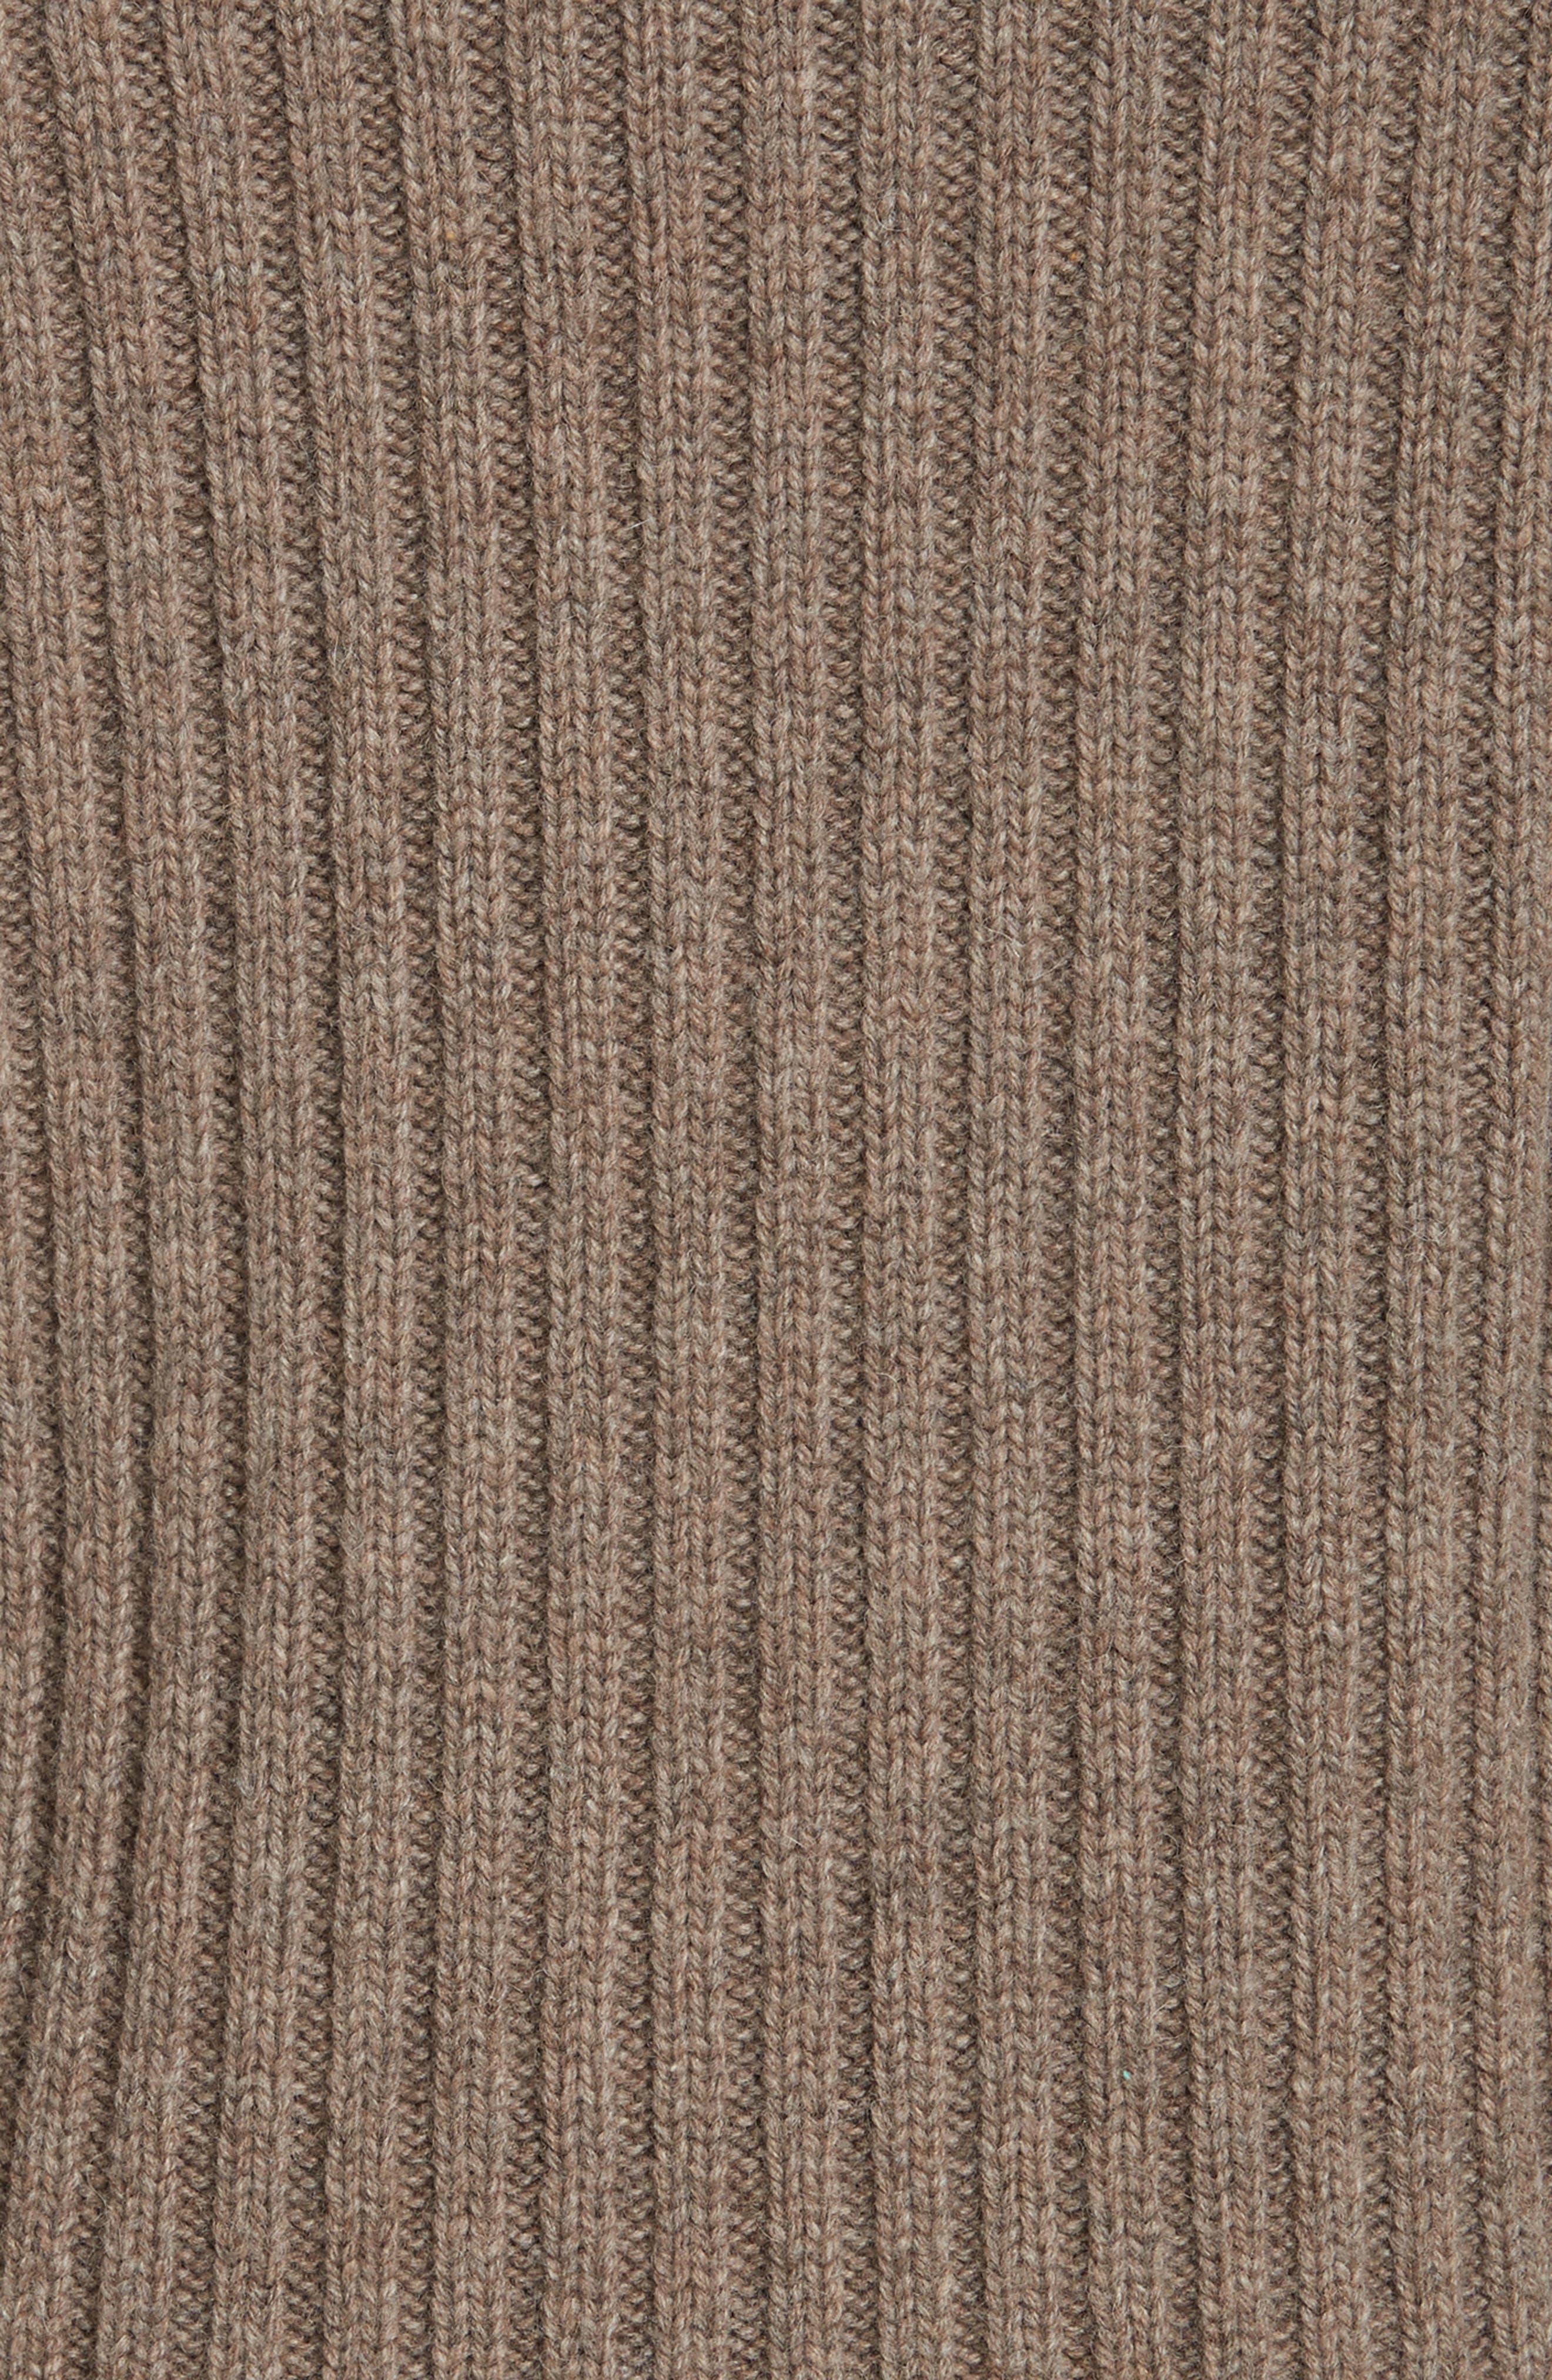 High-Neck Military Sweater,                             Alternate thumbnail 5, color,                             Taupe